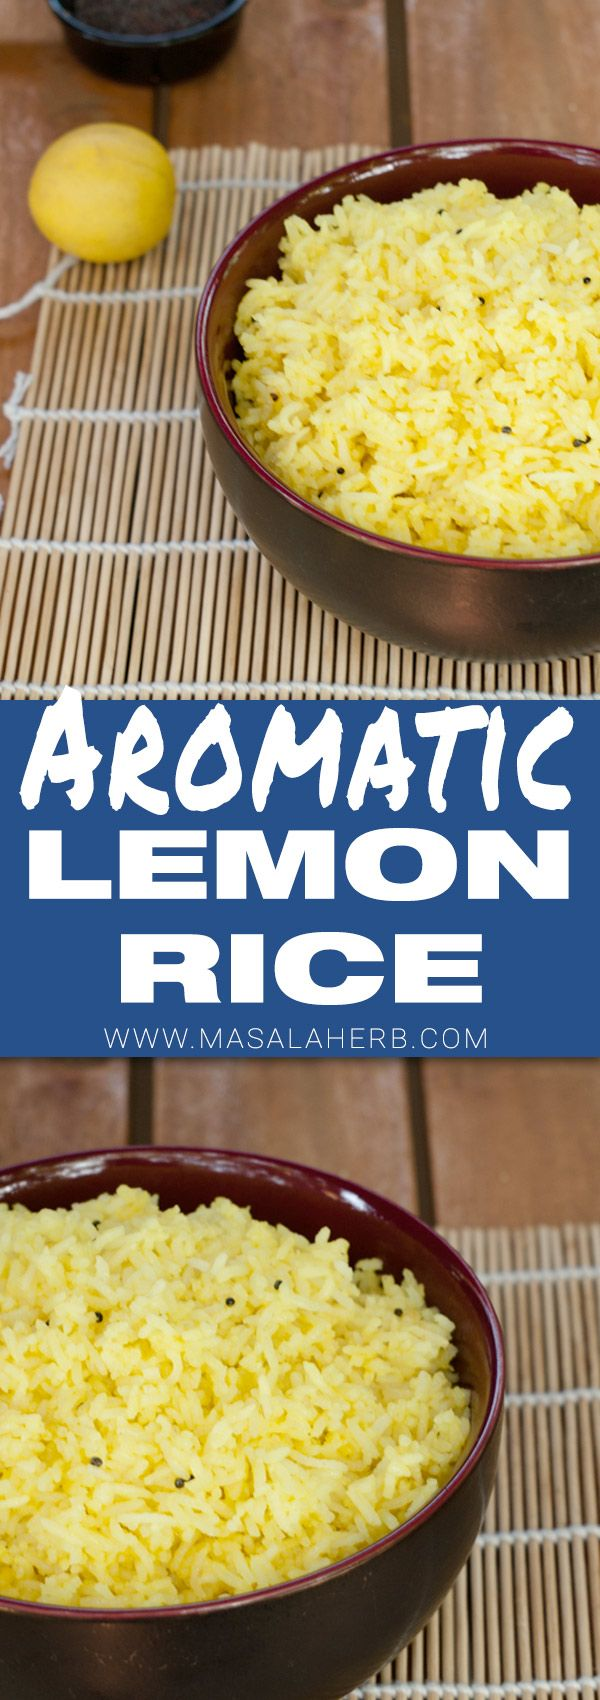 Lemon Rice - Fragrant Rice Recipe, great side dish and Goan Indian food www.MasalaHerb.com